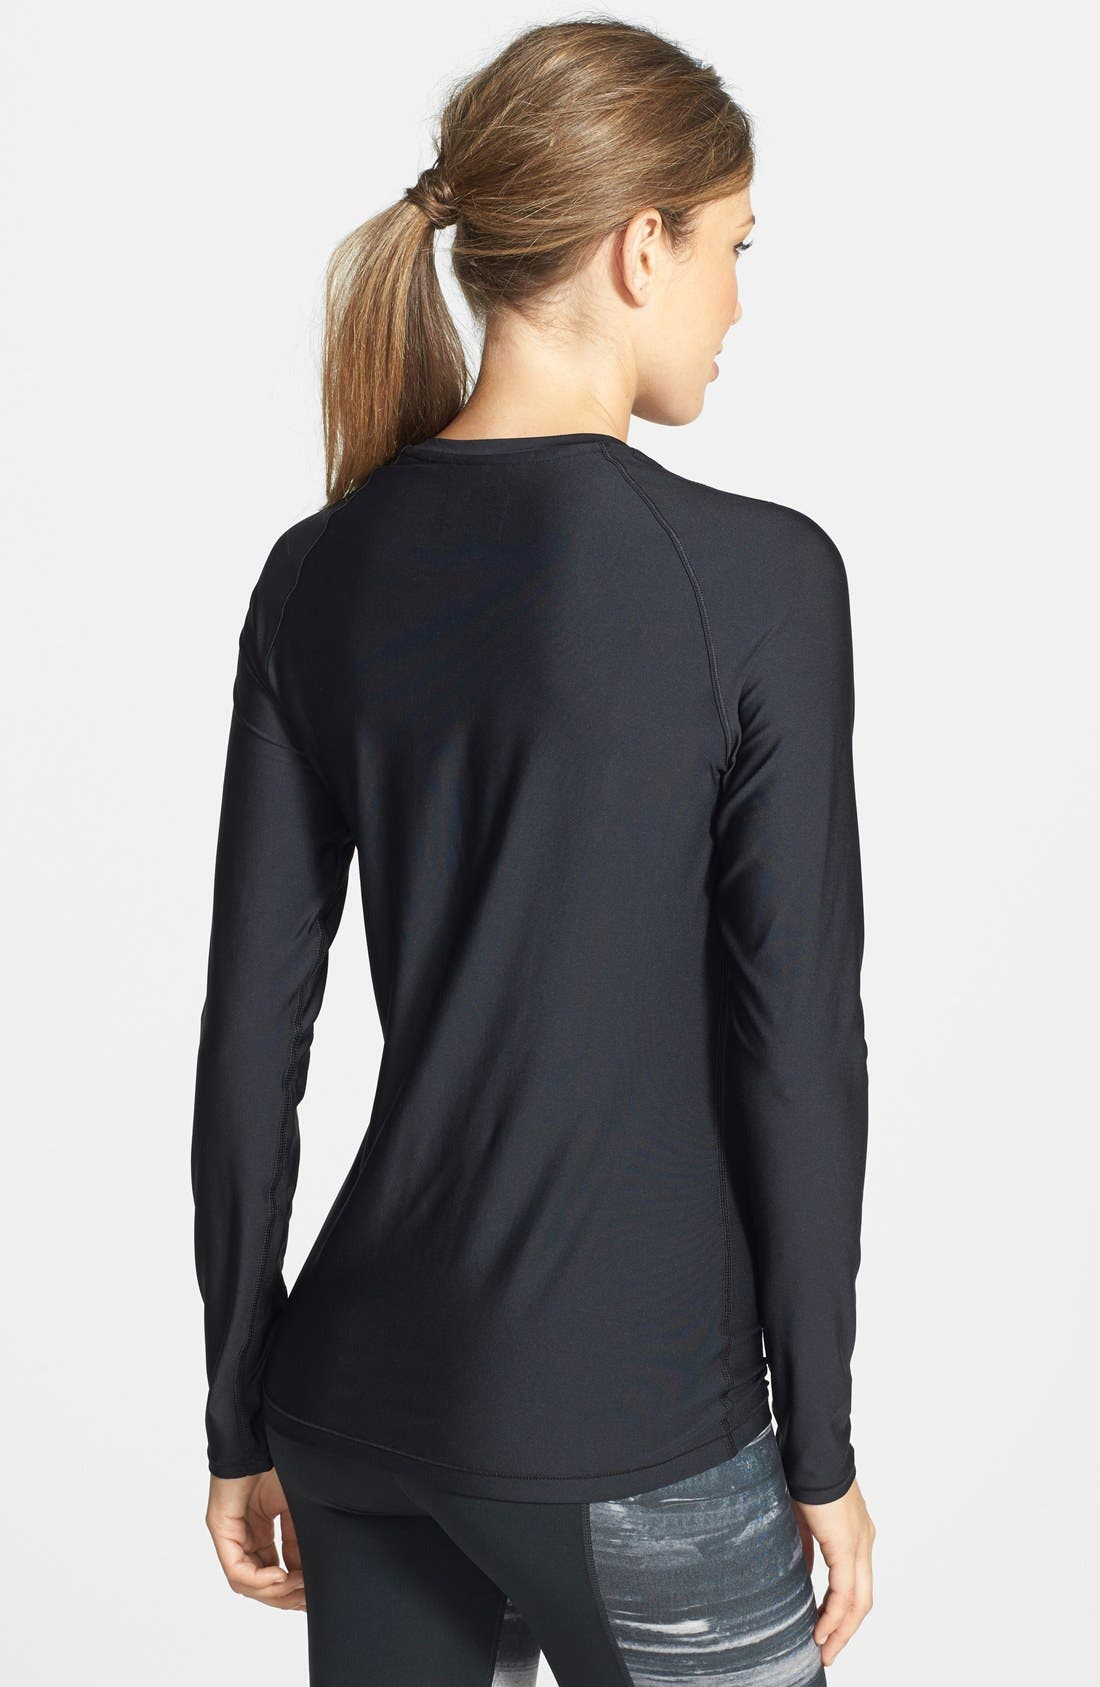 'Alpha Novelty' HeatGear<sup>®</sup> Long Sleeve Top,                             Alternate thumbnail 2, color,                             001